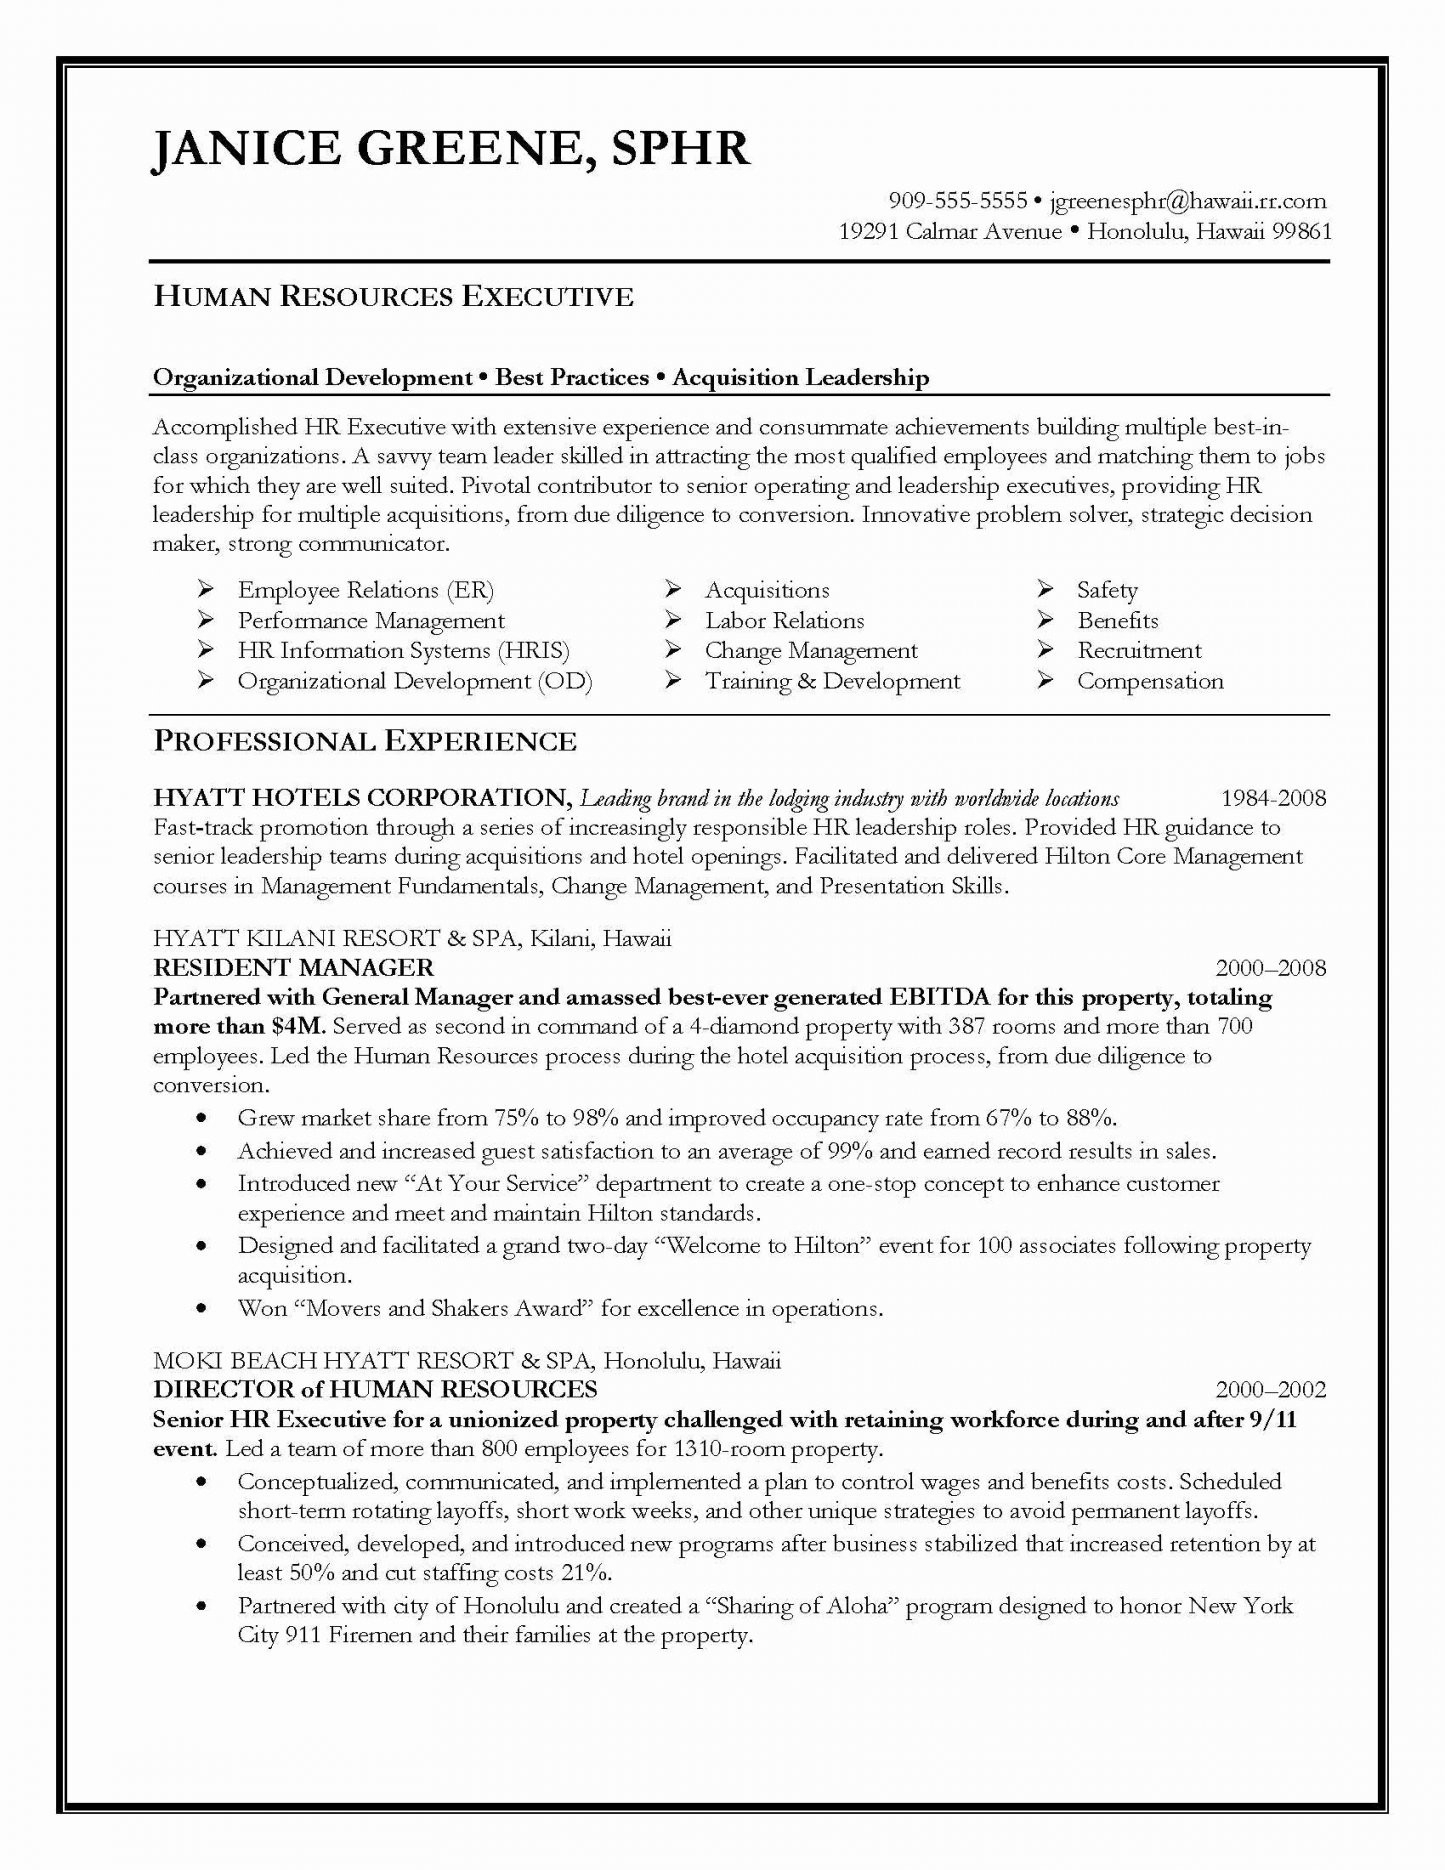 Executive Resume Writing Services - top Rated Resume Writing Services Unique Awesome Collection